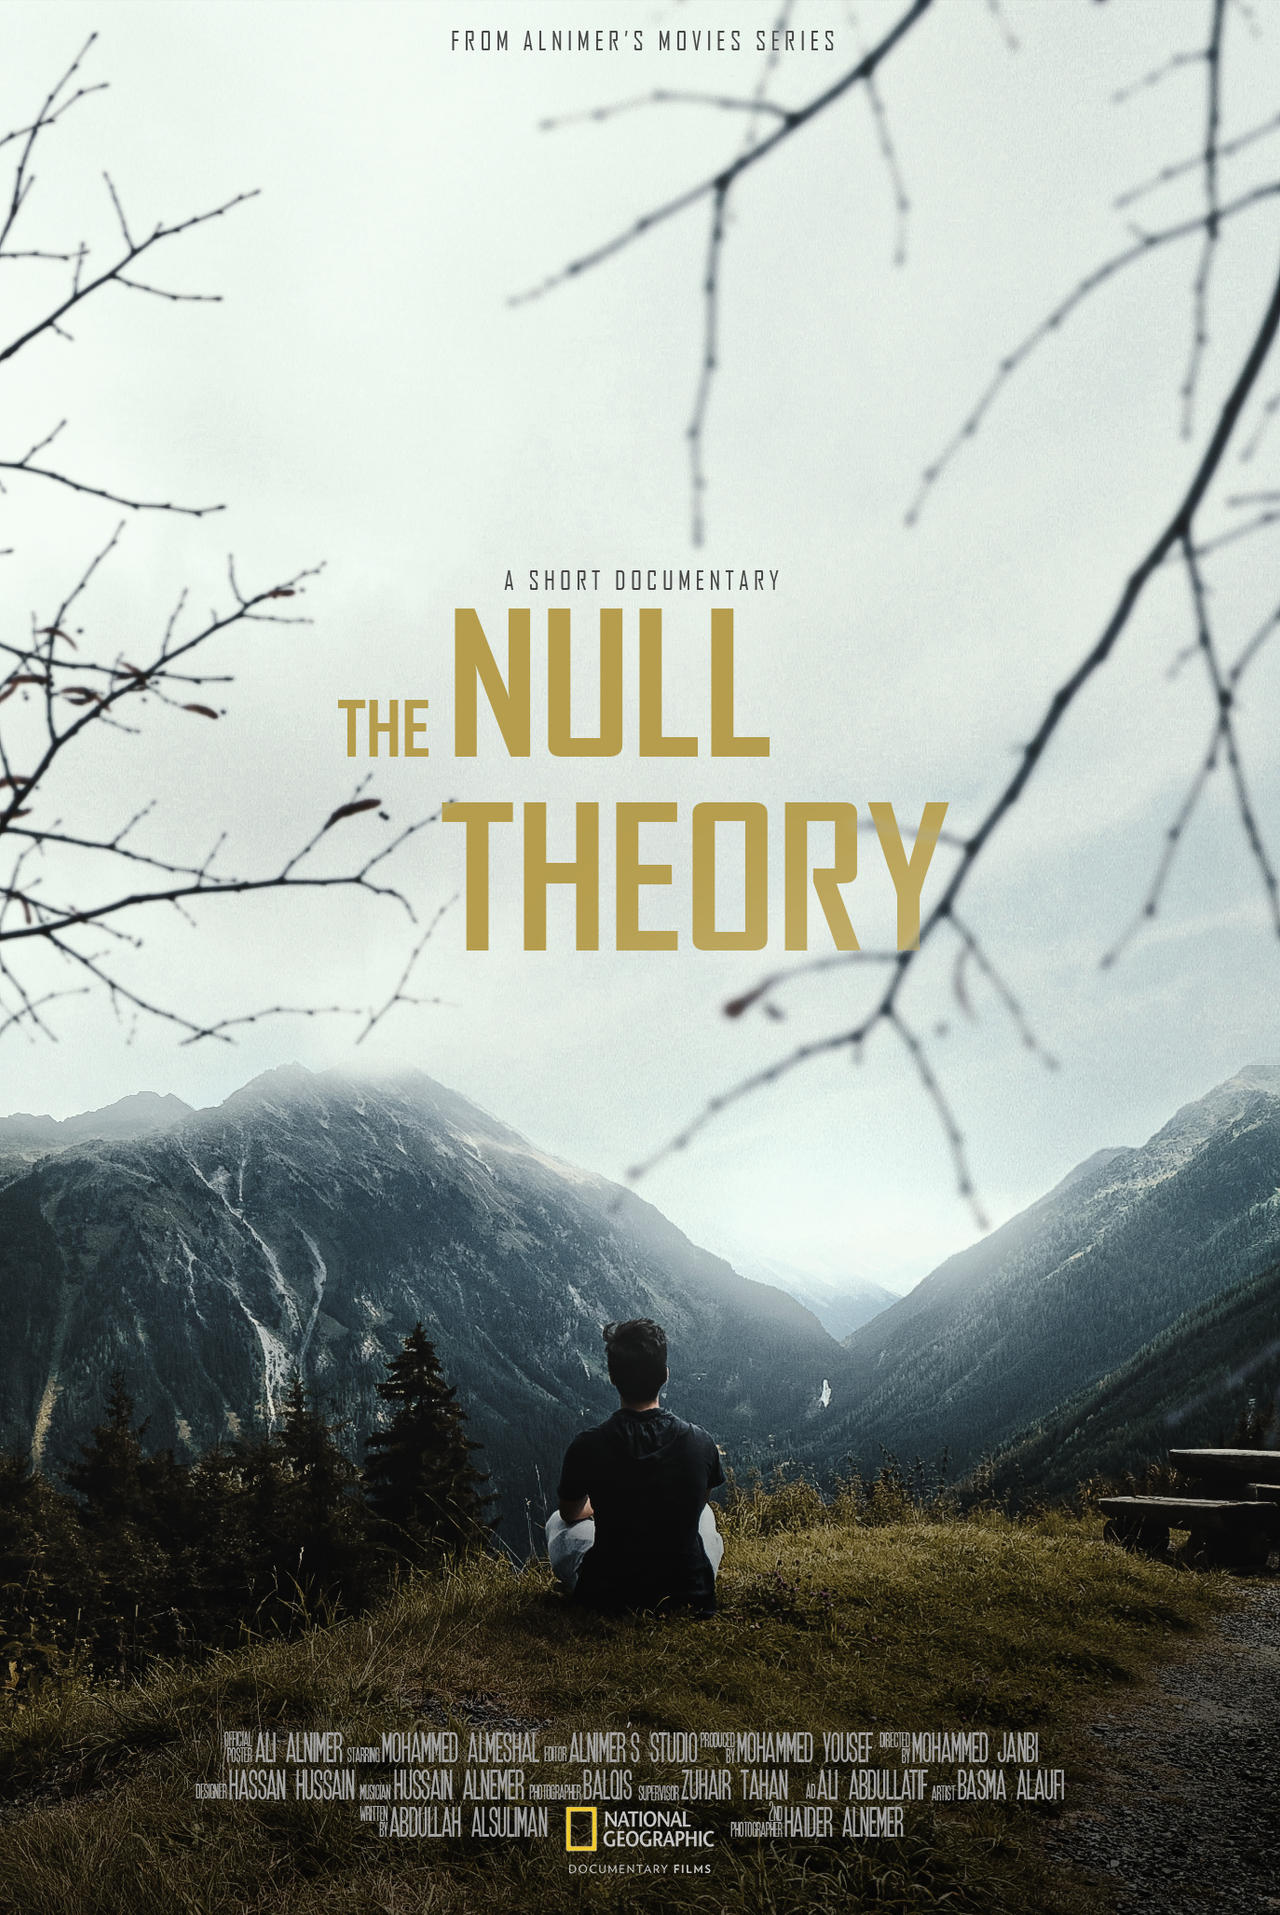 The Null Theory (Imaginary Movie Poster)